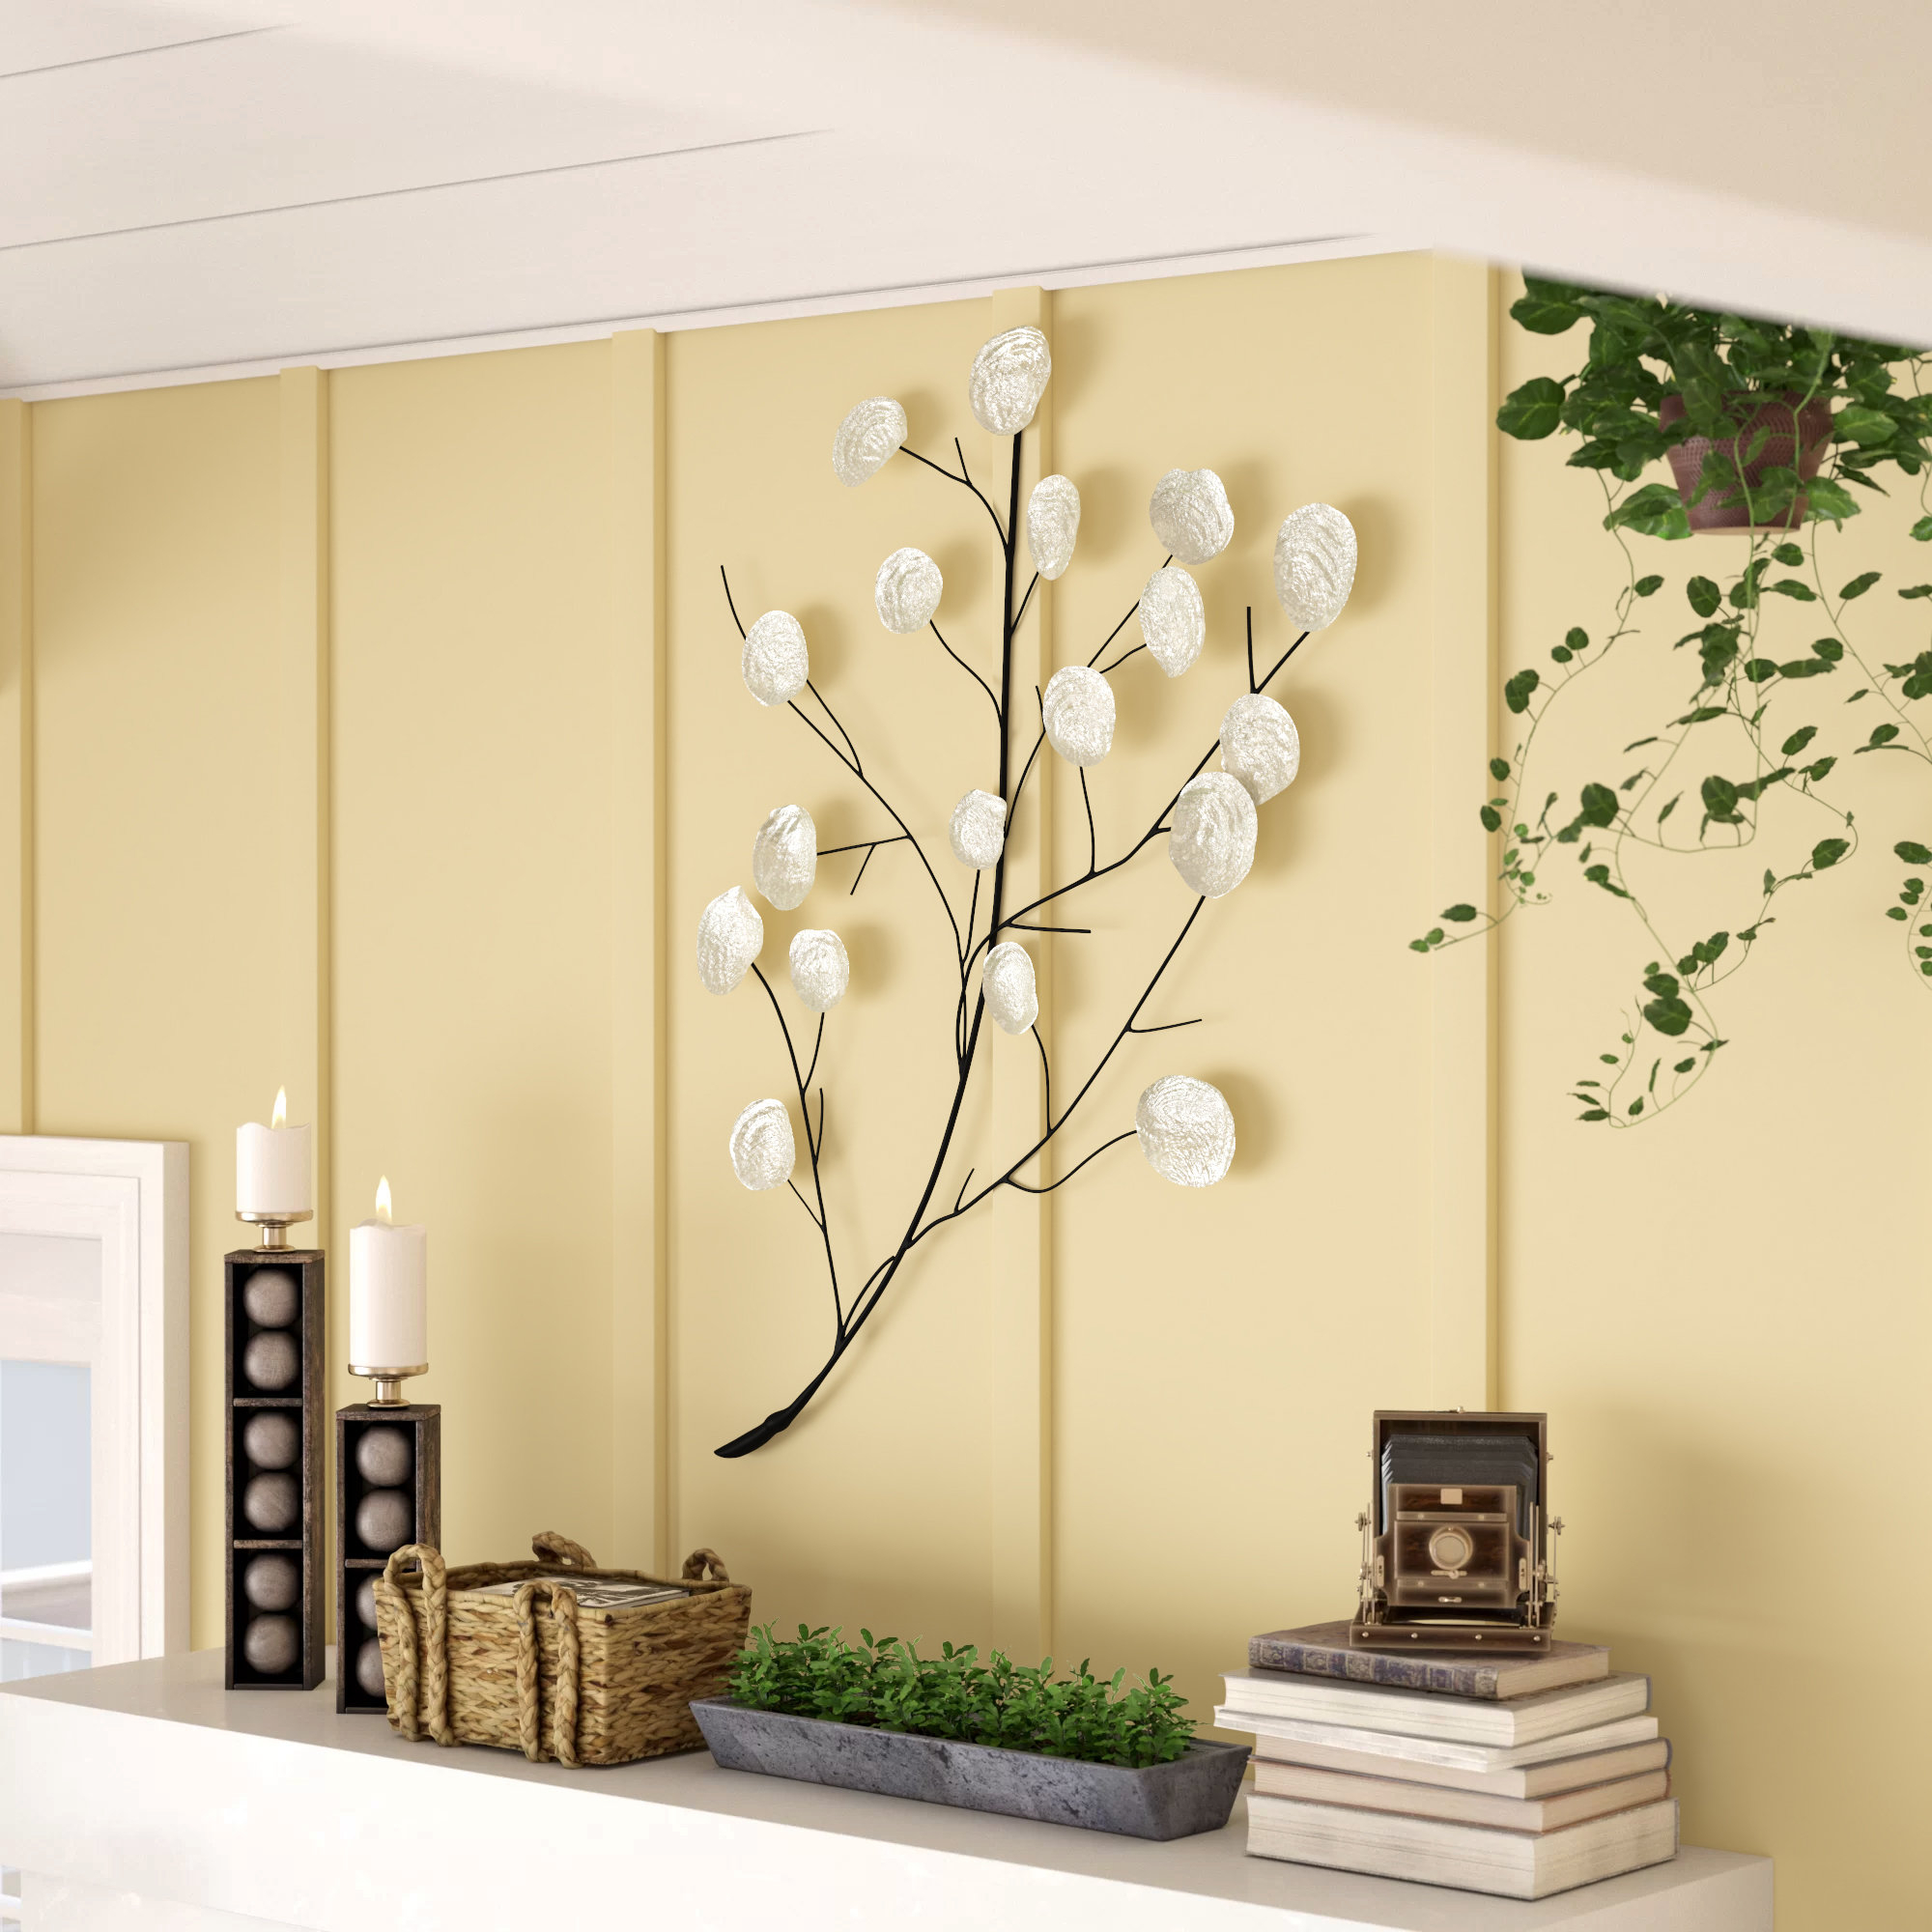 Flowing Leaves Wall Decor | Wayfair with regard to Flowing Leaves Wall Decor (Image 16 of 30)